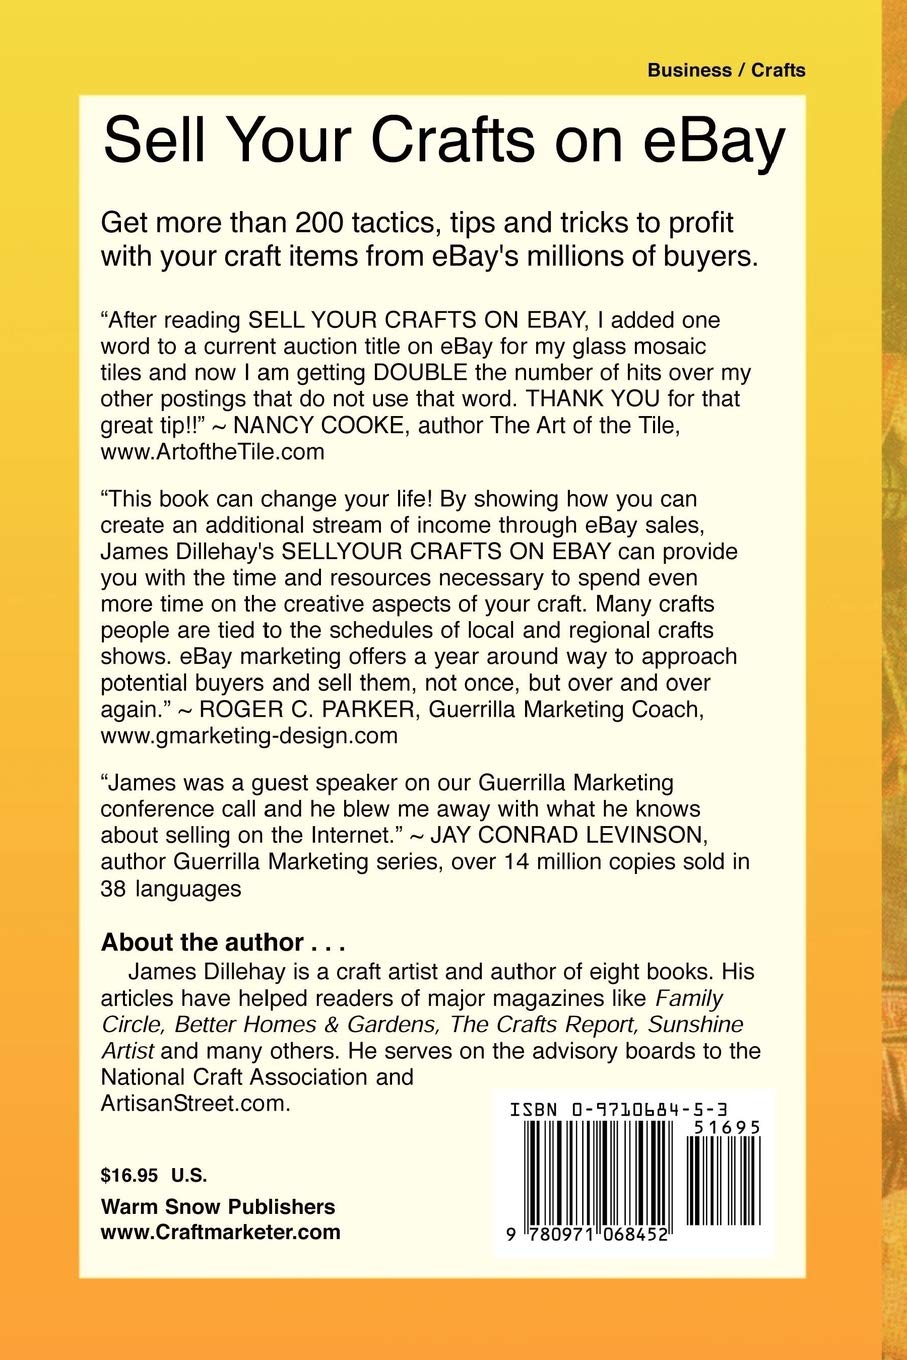 Sell Your Crafts On Ebay Dillehay James 9780971068452 Amazon Com Books